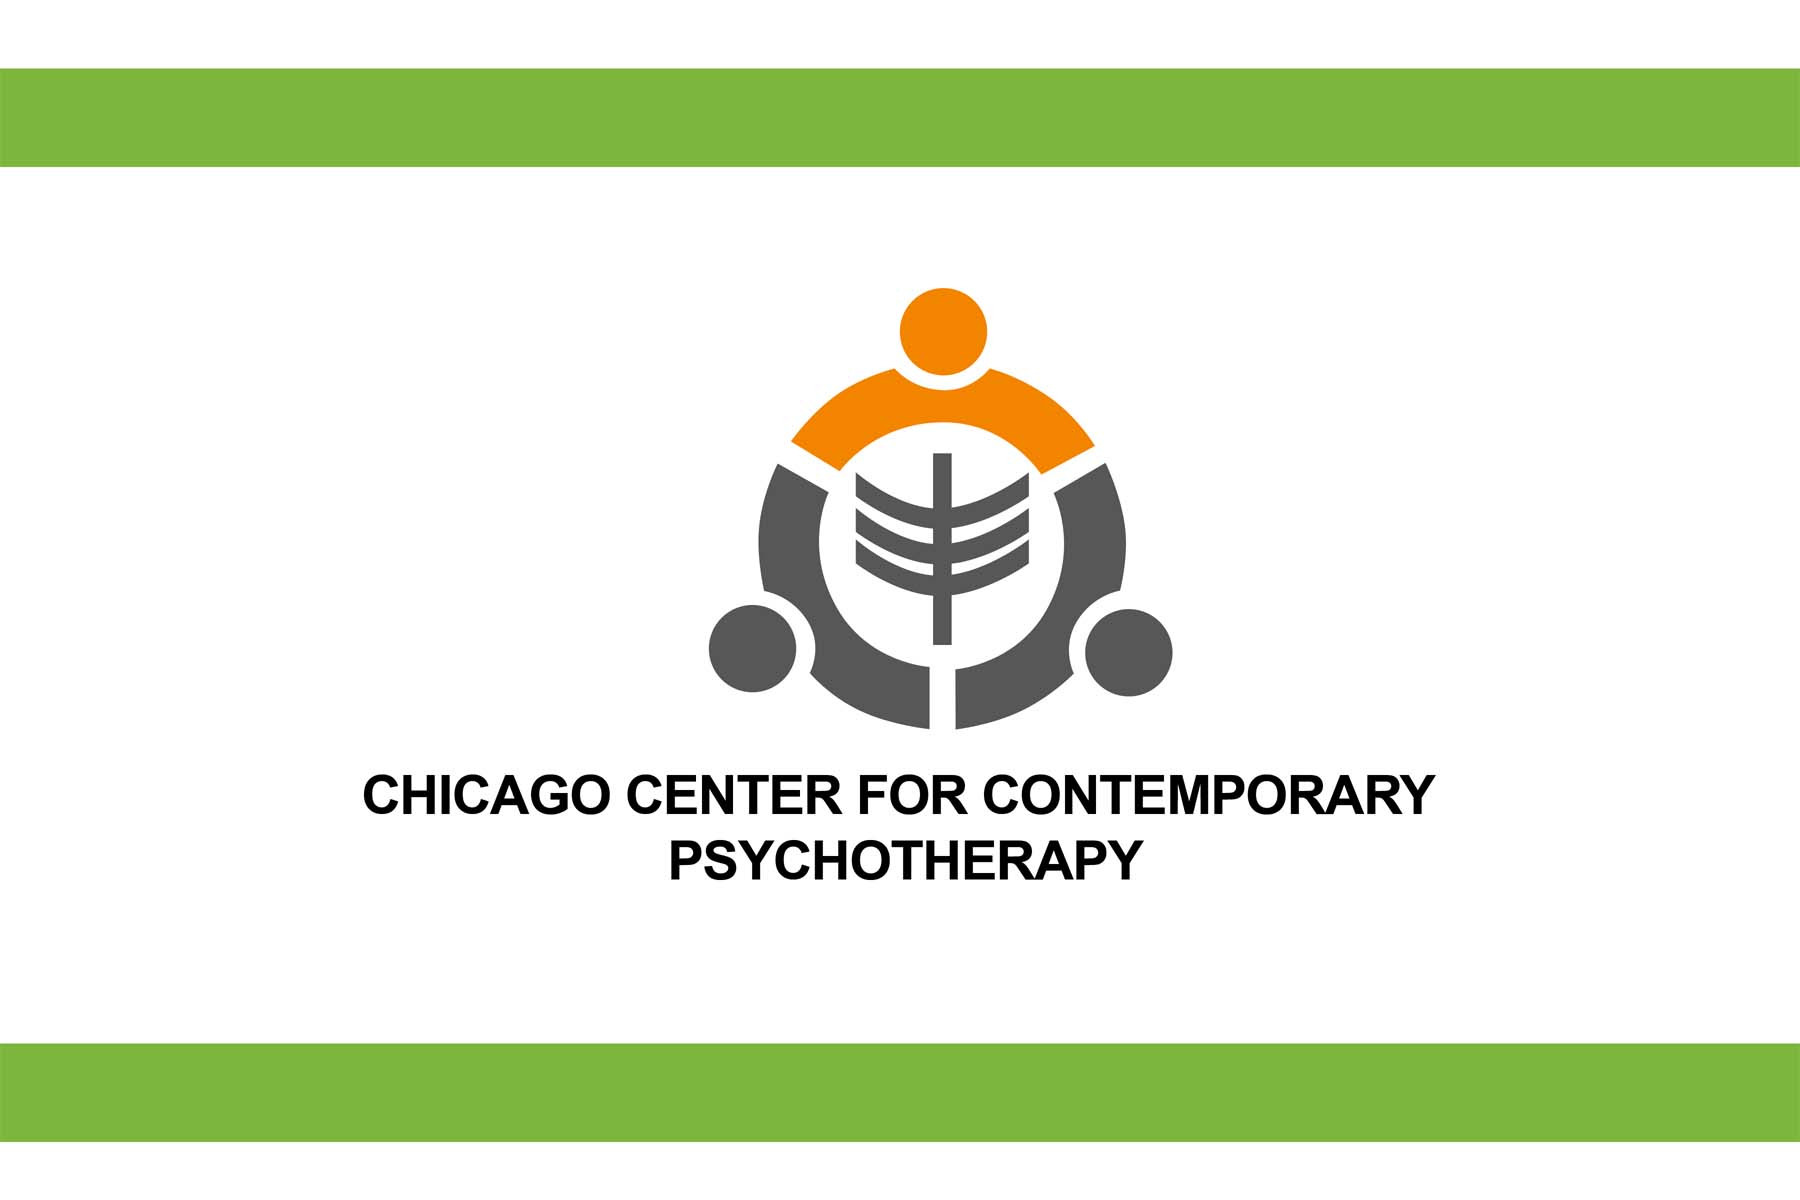 Logo Design by Private User - Entry No. 40 in the Logo Design Contest Inspiring Logo Design for Chicago Center for Contemporary Psychotherapy.